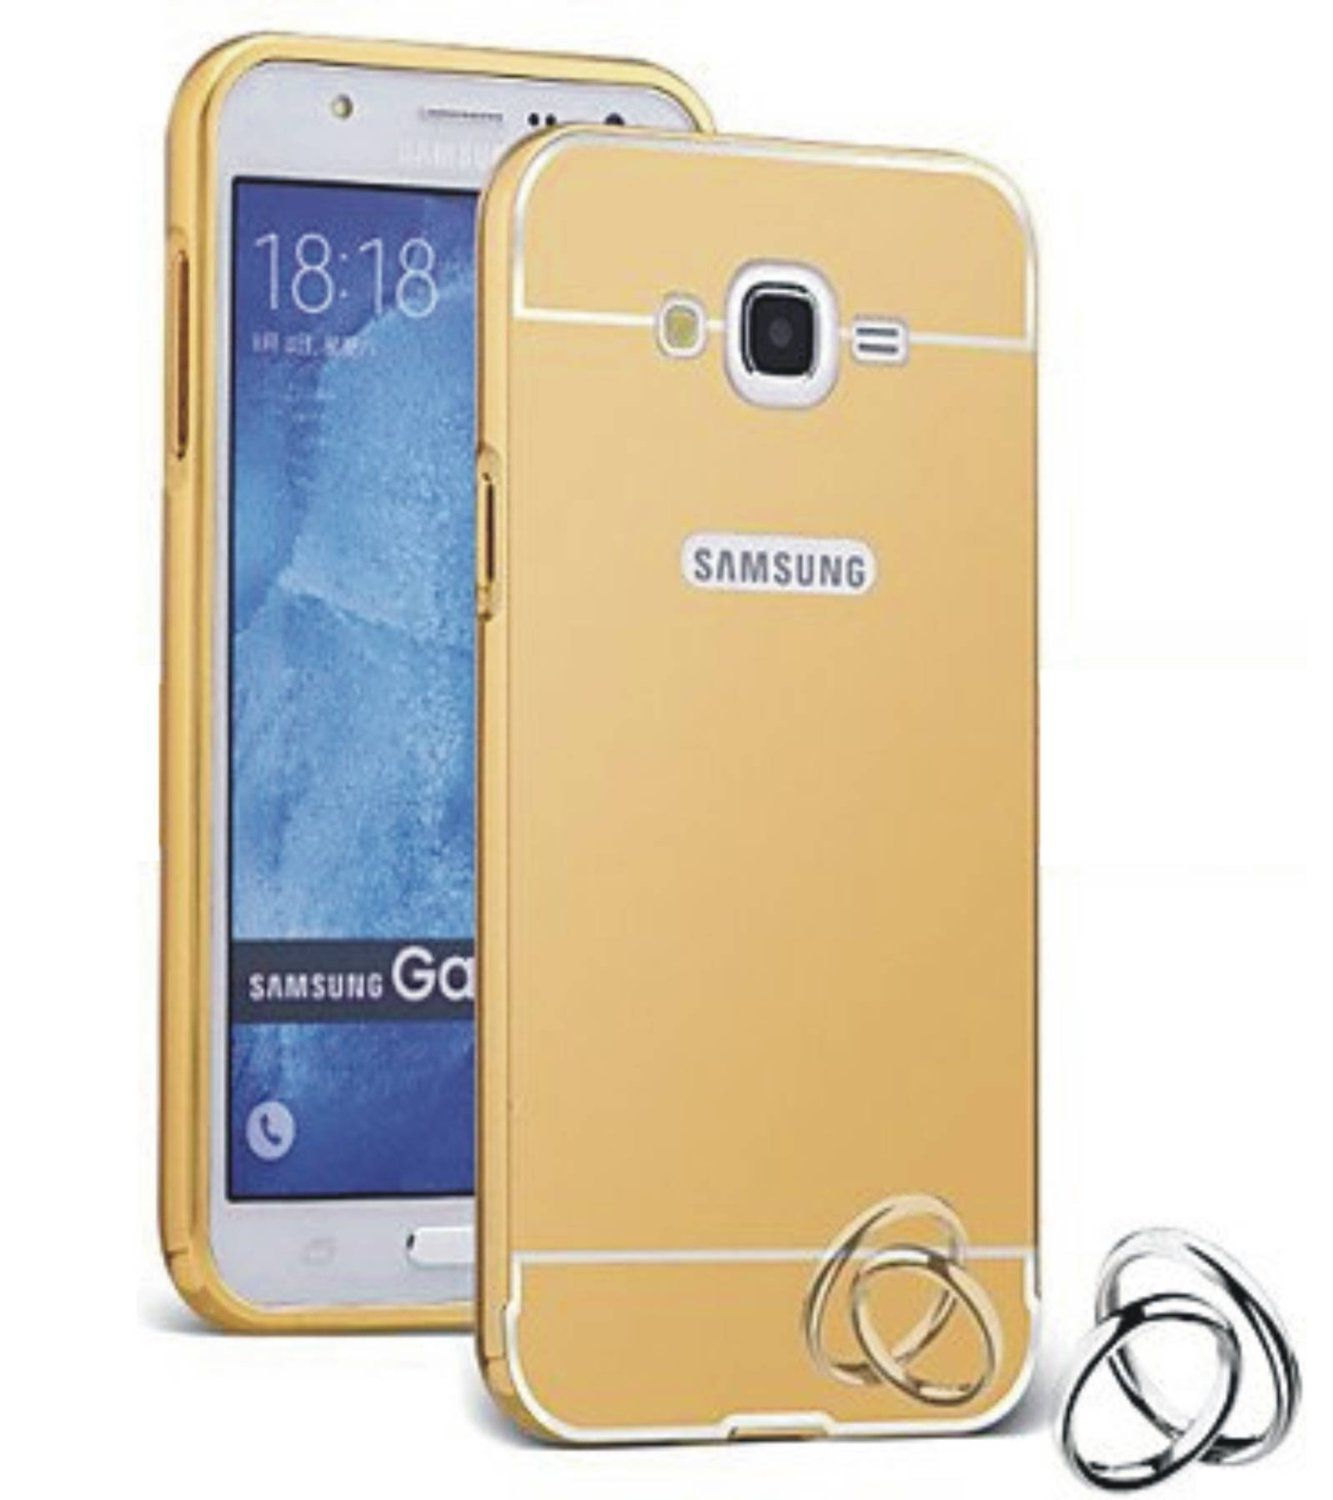 Mirror Back Cover For Samsung Galaxy J1 + Zipper earphone free by Style Crome.